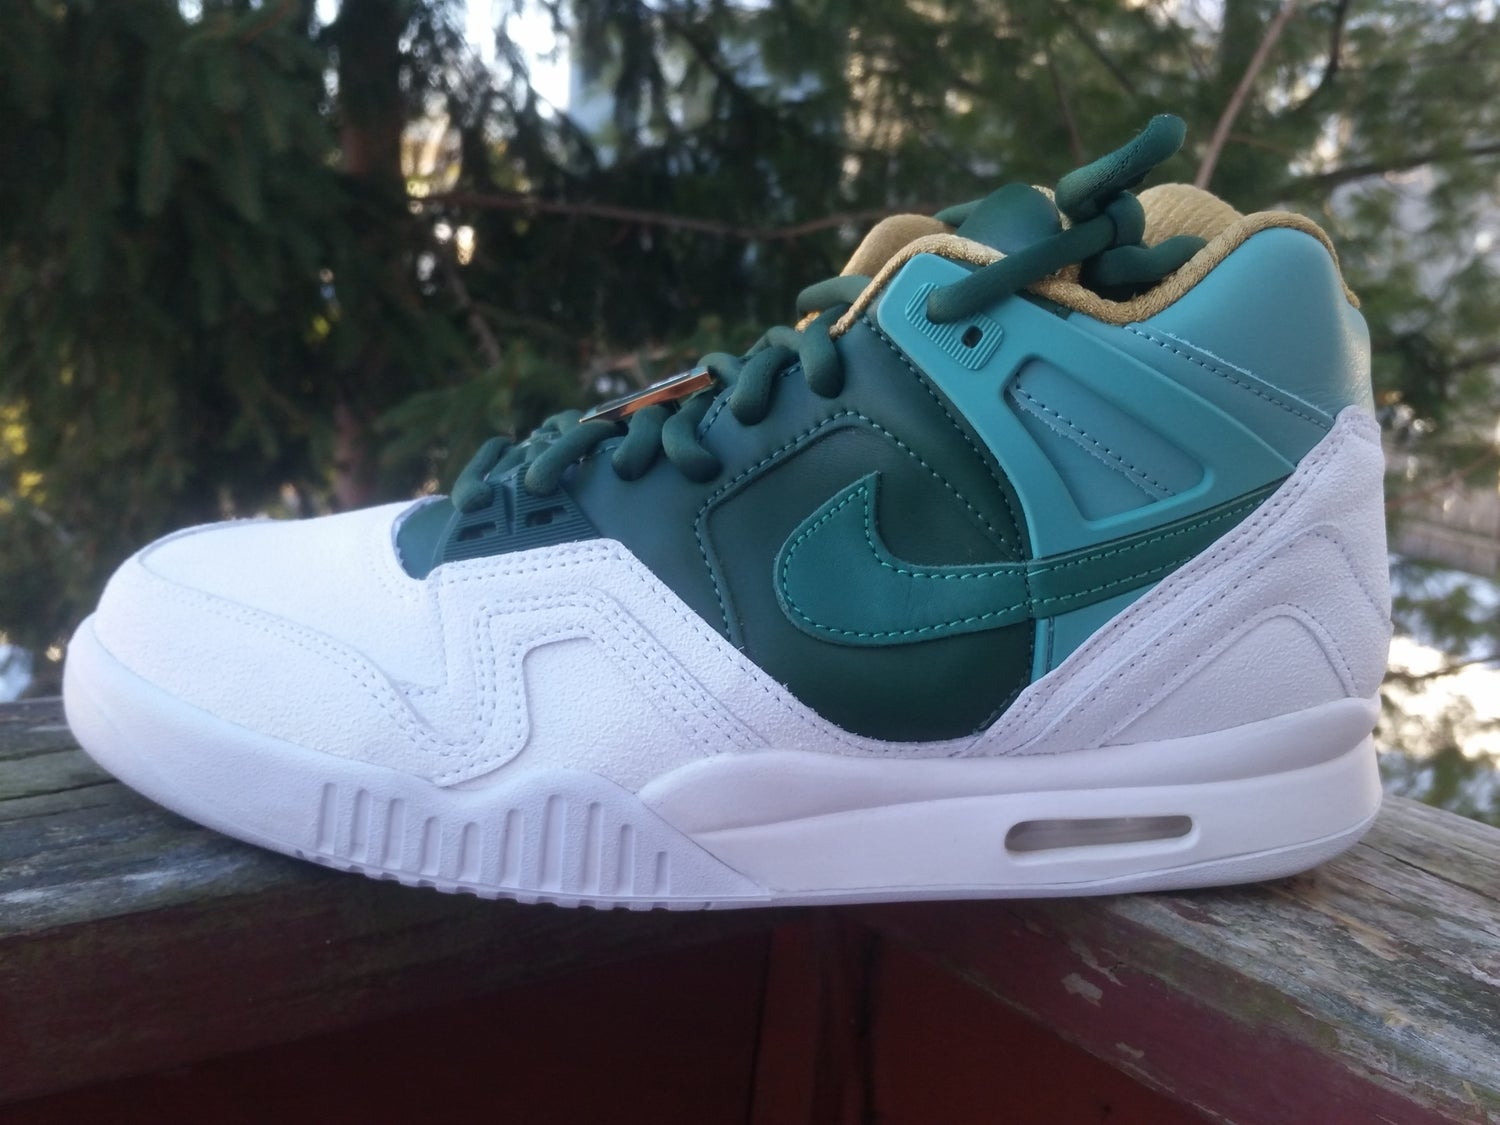 Image of Air Tech Challenge 2 Sp white / jade